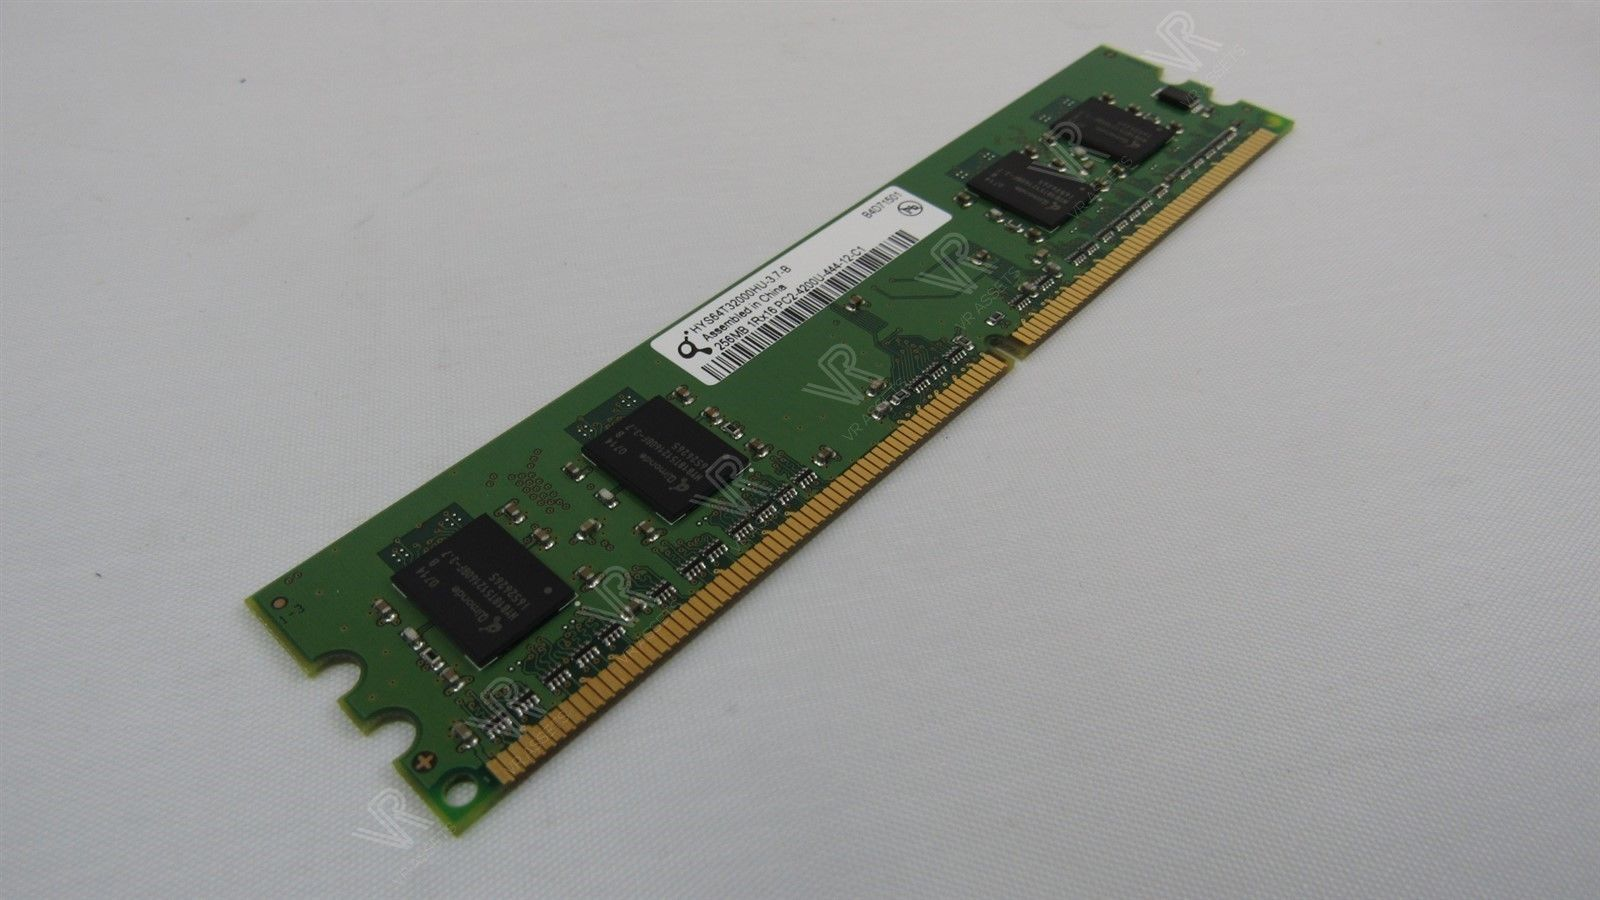 Dell 256MB PC2-4200 DDR2-533MHz non-ECC CL4 240-Pin Memory D6492 0D6492